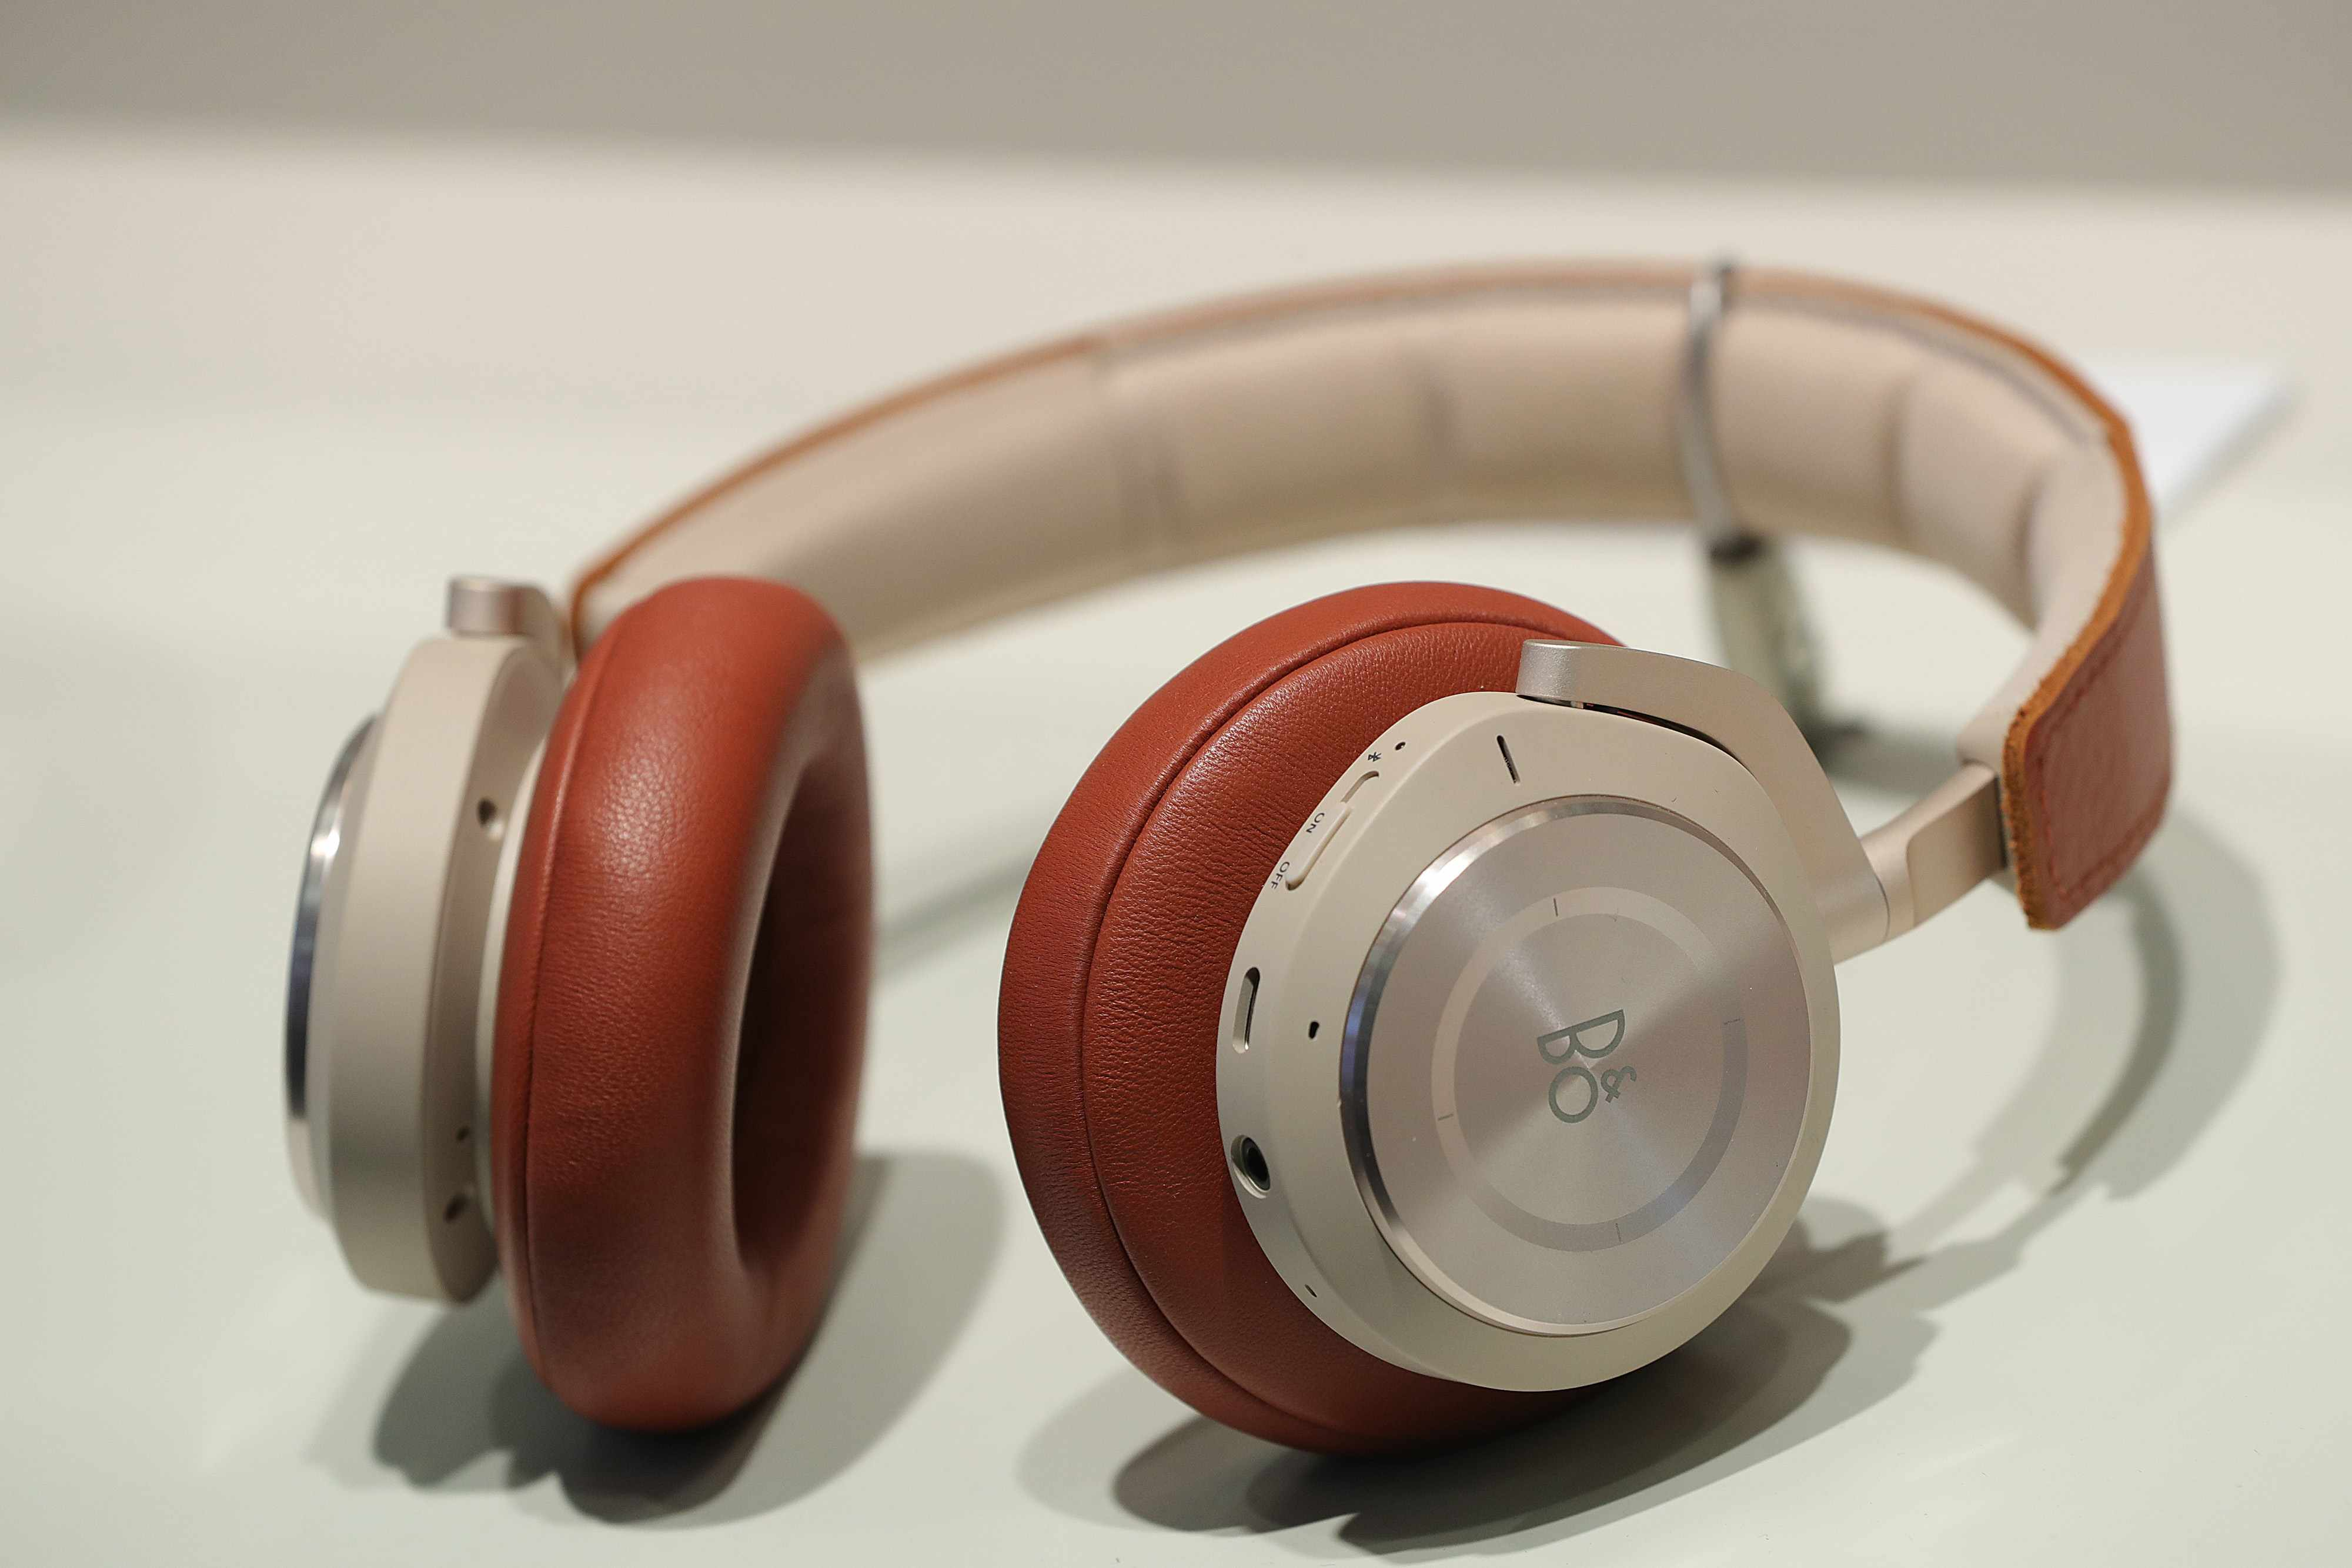 A pair of Beoplay H9i headphones sit on the Bang & Olufsen A/S exhibition stand during a press preview day at the IFA consumer electronics show in Berlin, Germany, on Thursday, Aug. 30, 2018. IFA, which runs Aug. 31 to Sept. 5, showcases the latest digital lifestyle products and technology. Photographer: Krisztian Bocsi/Bloomberg via Getty Images